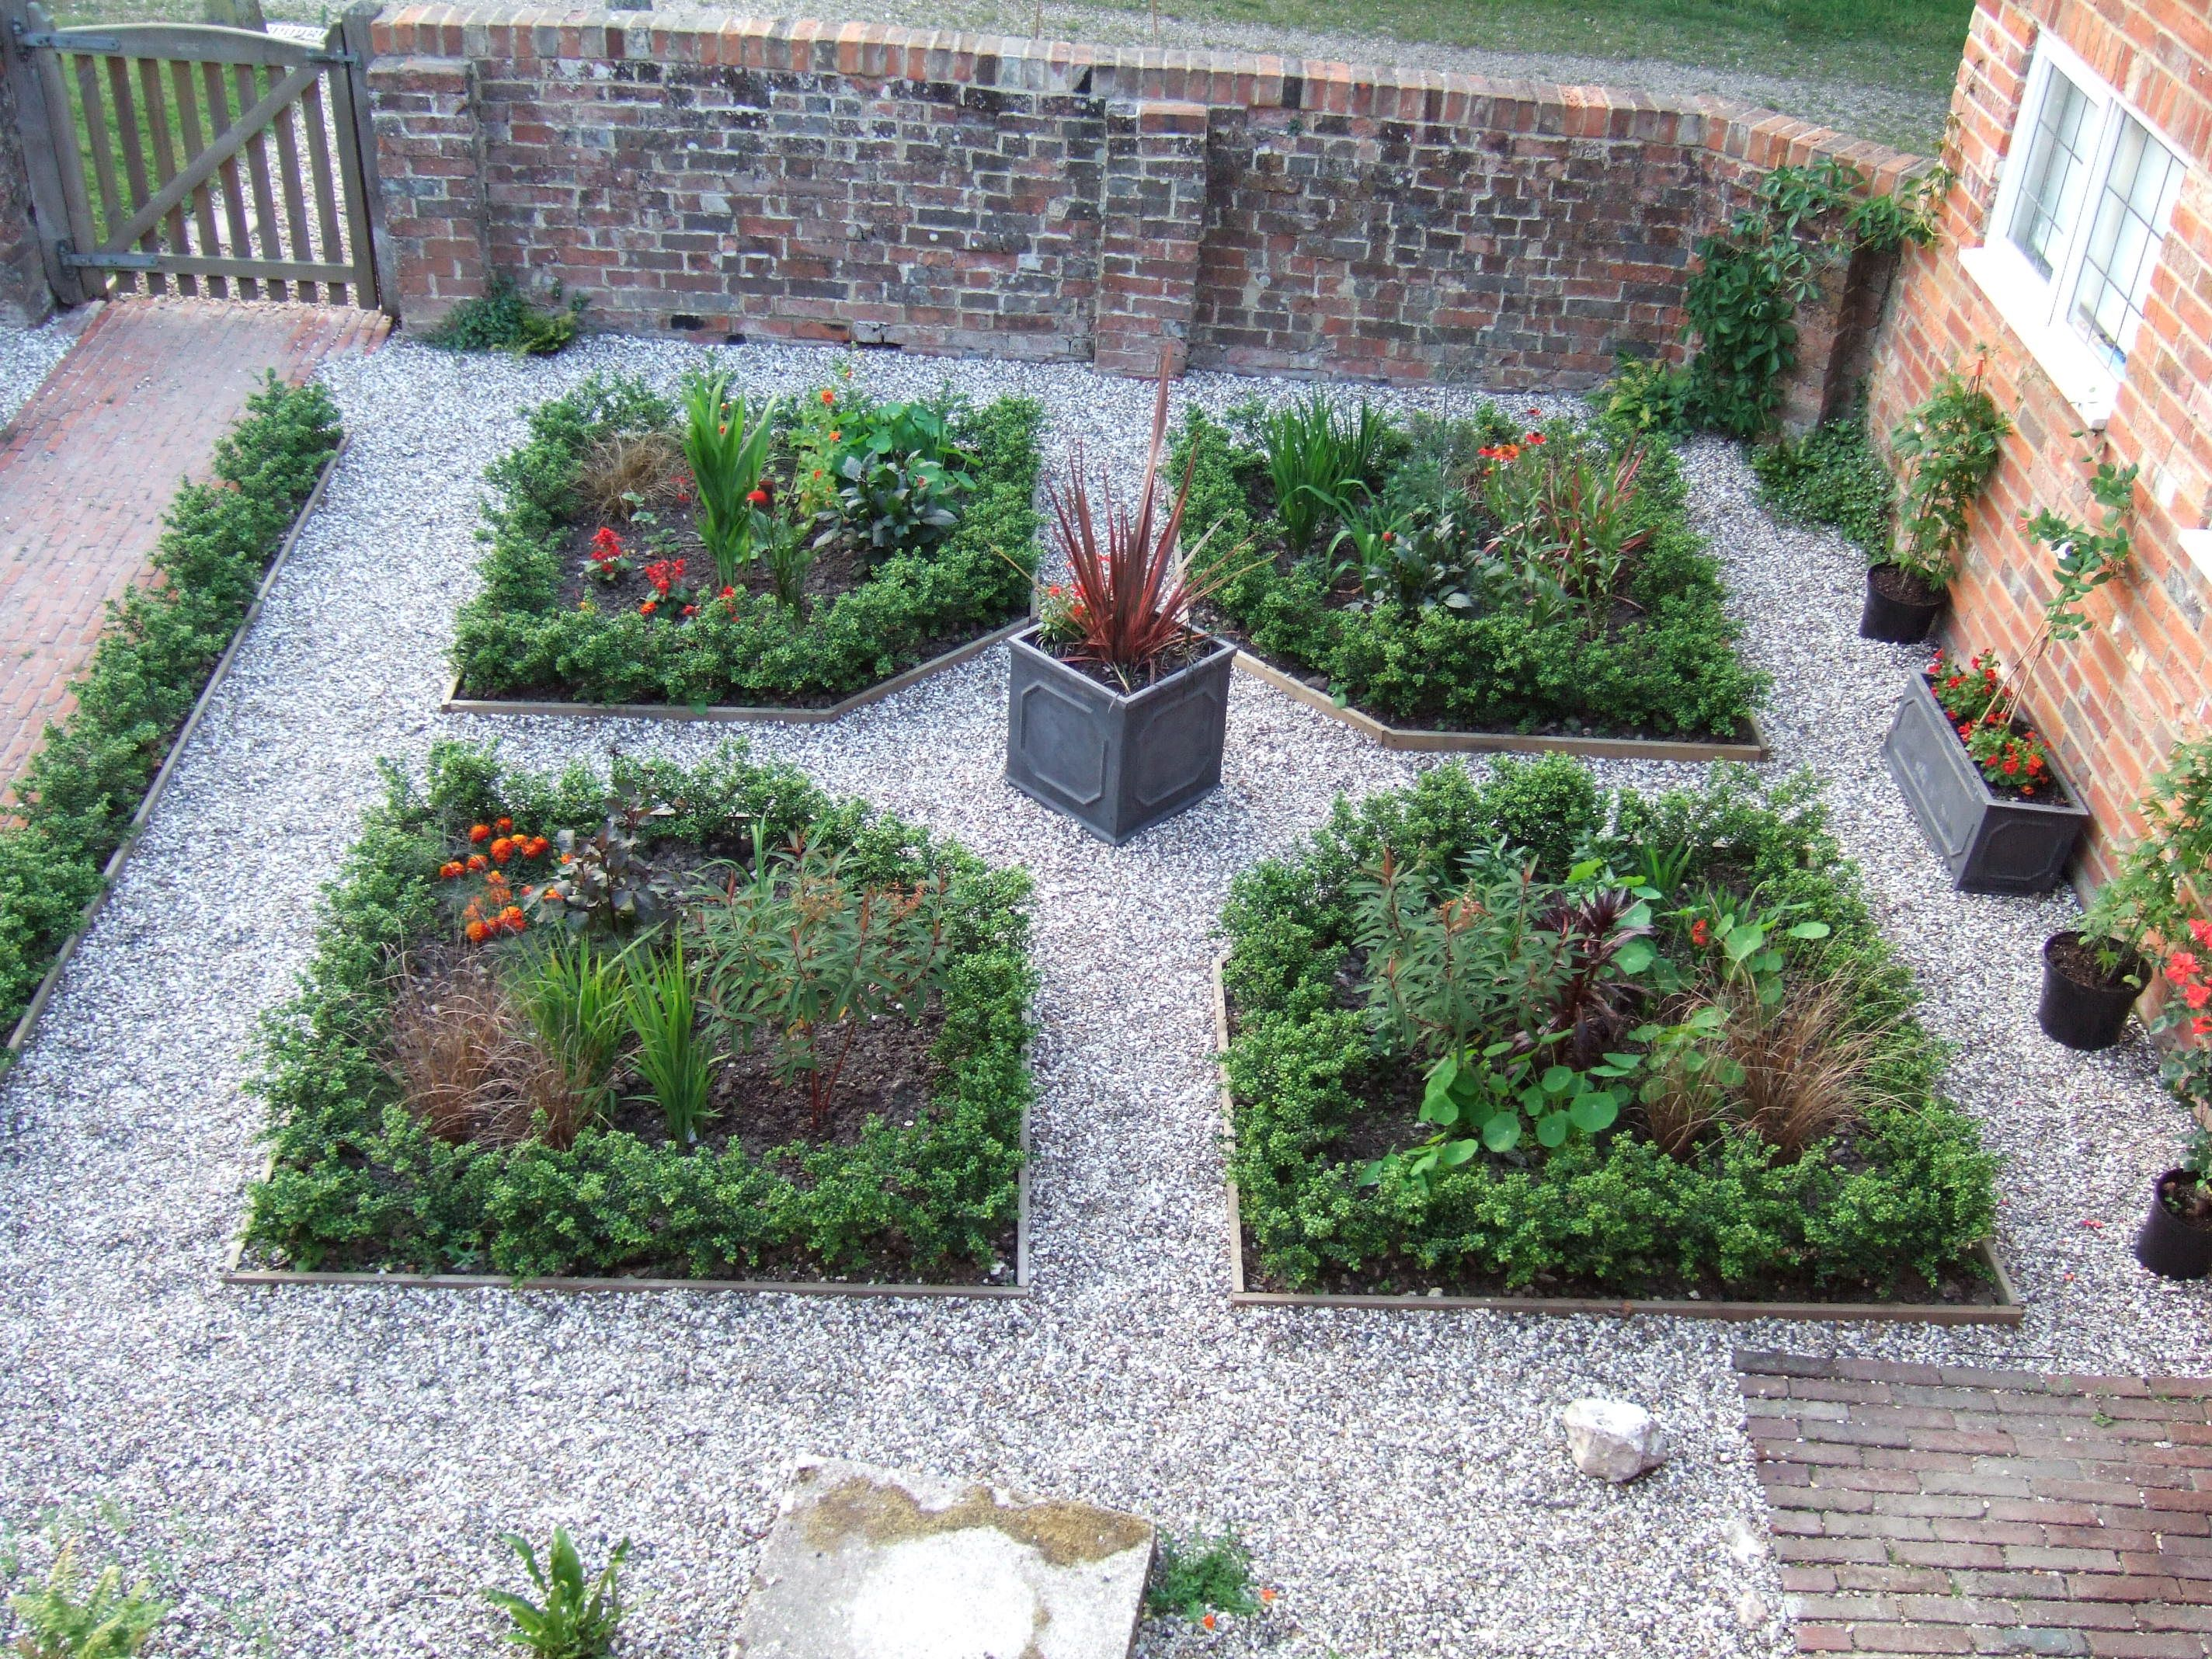 Achievable home garden based on French Parterre style | Home ...